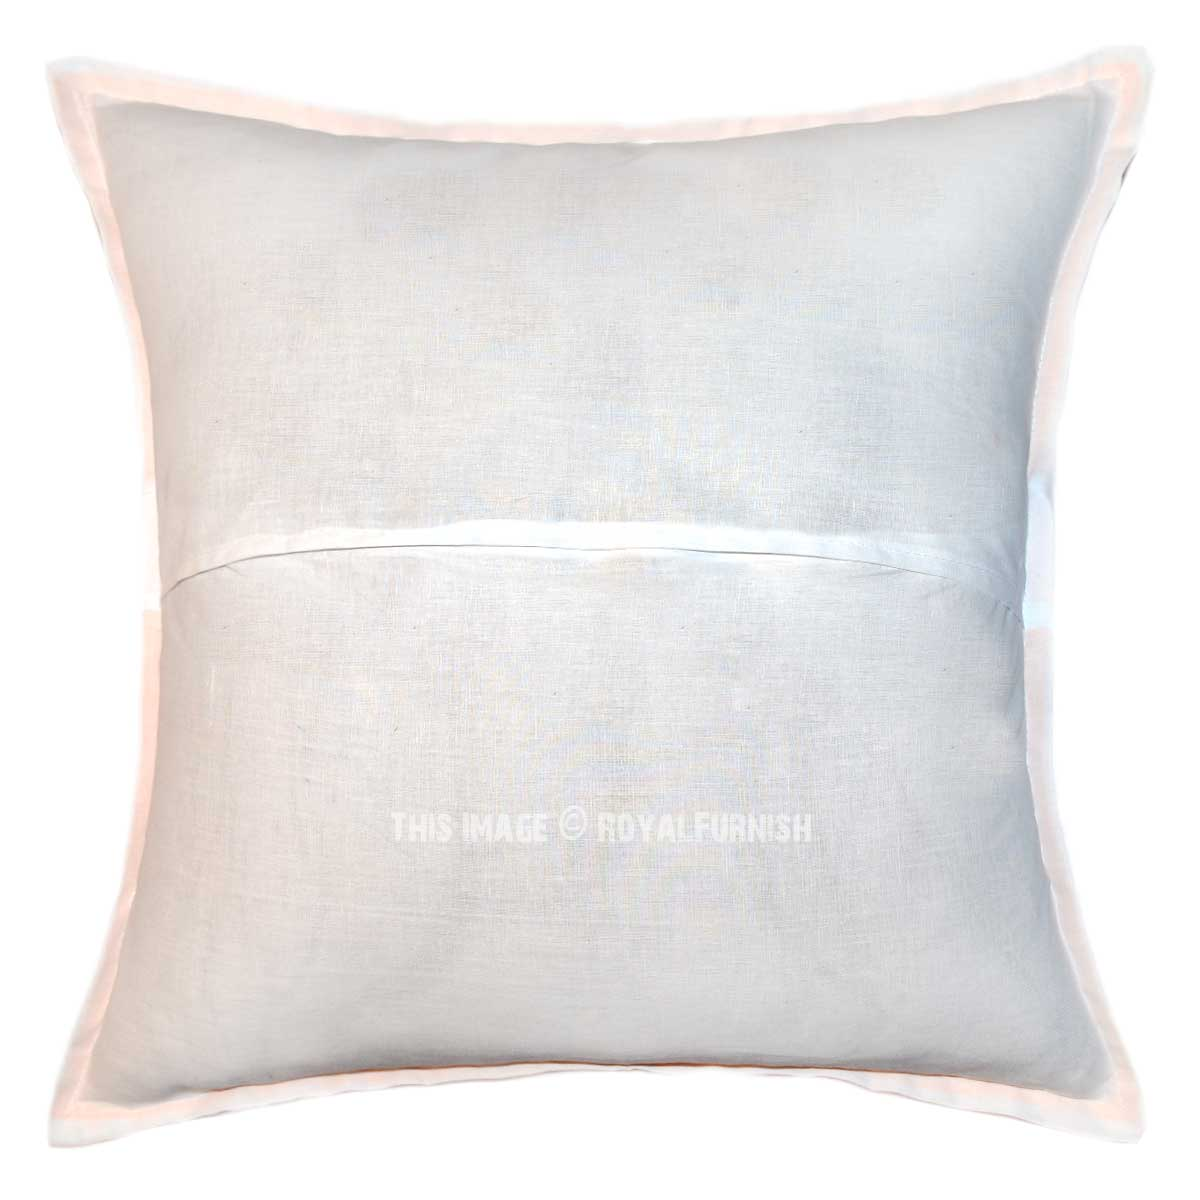 Decorative Pillows With Mirrors : 16X16 White Unique Mirror Embroidered Designer Throw Pillow Case - RoyalFurnish.com